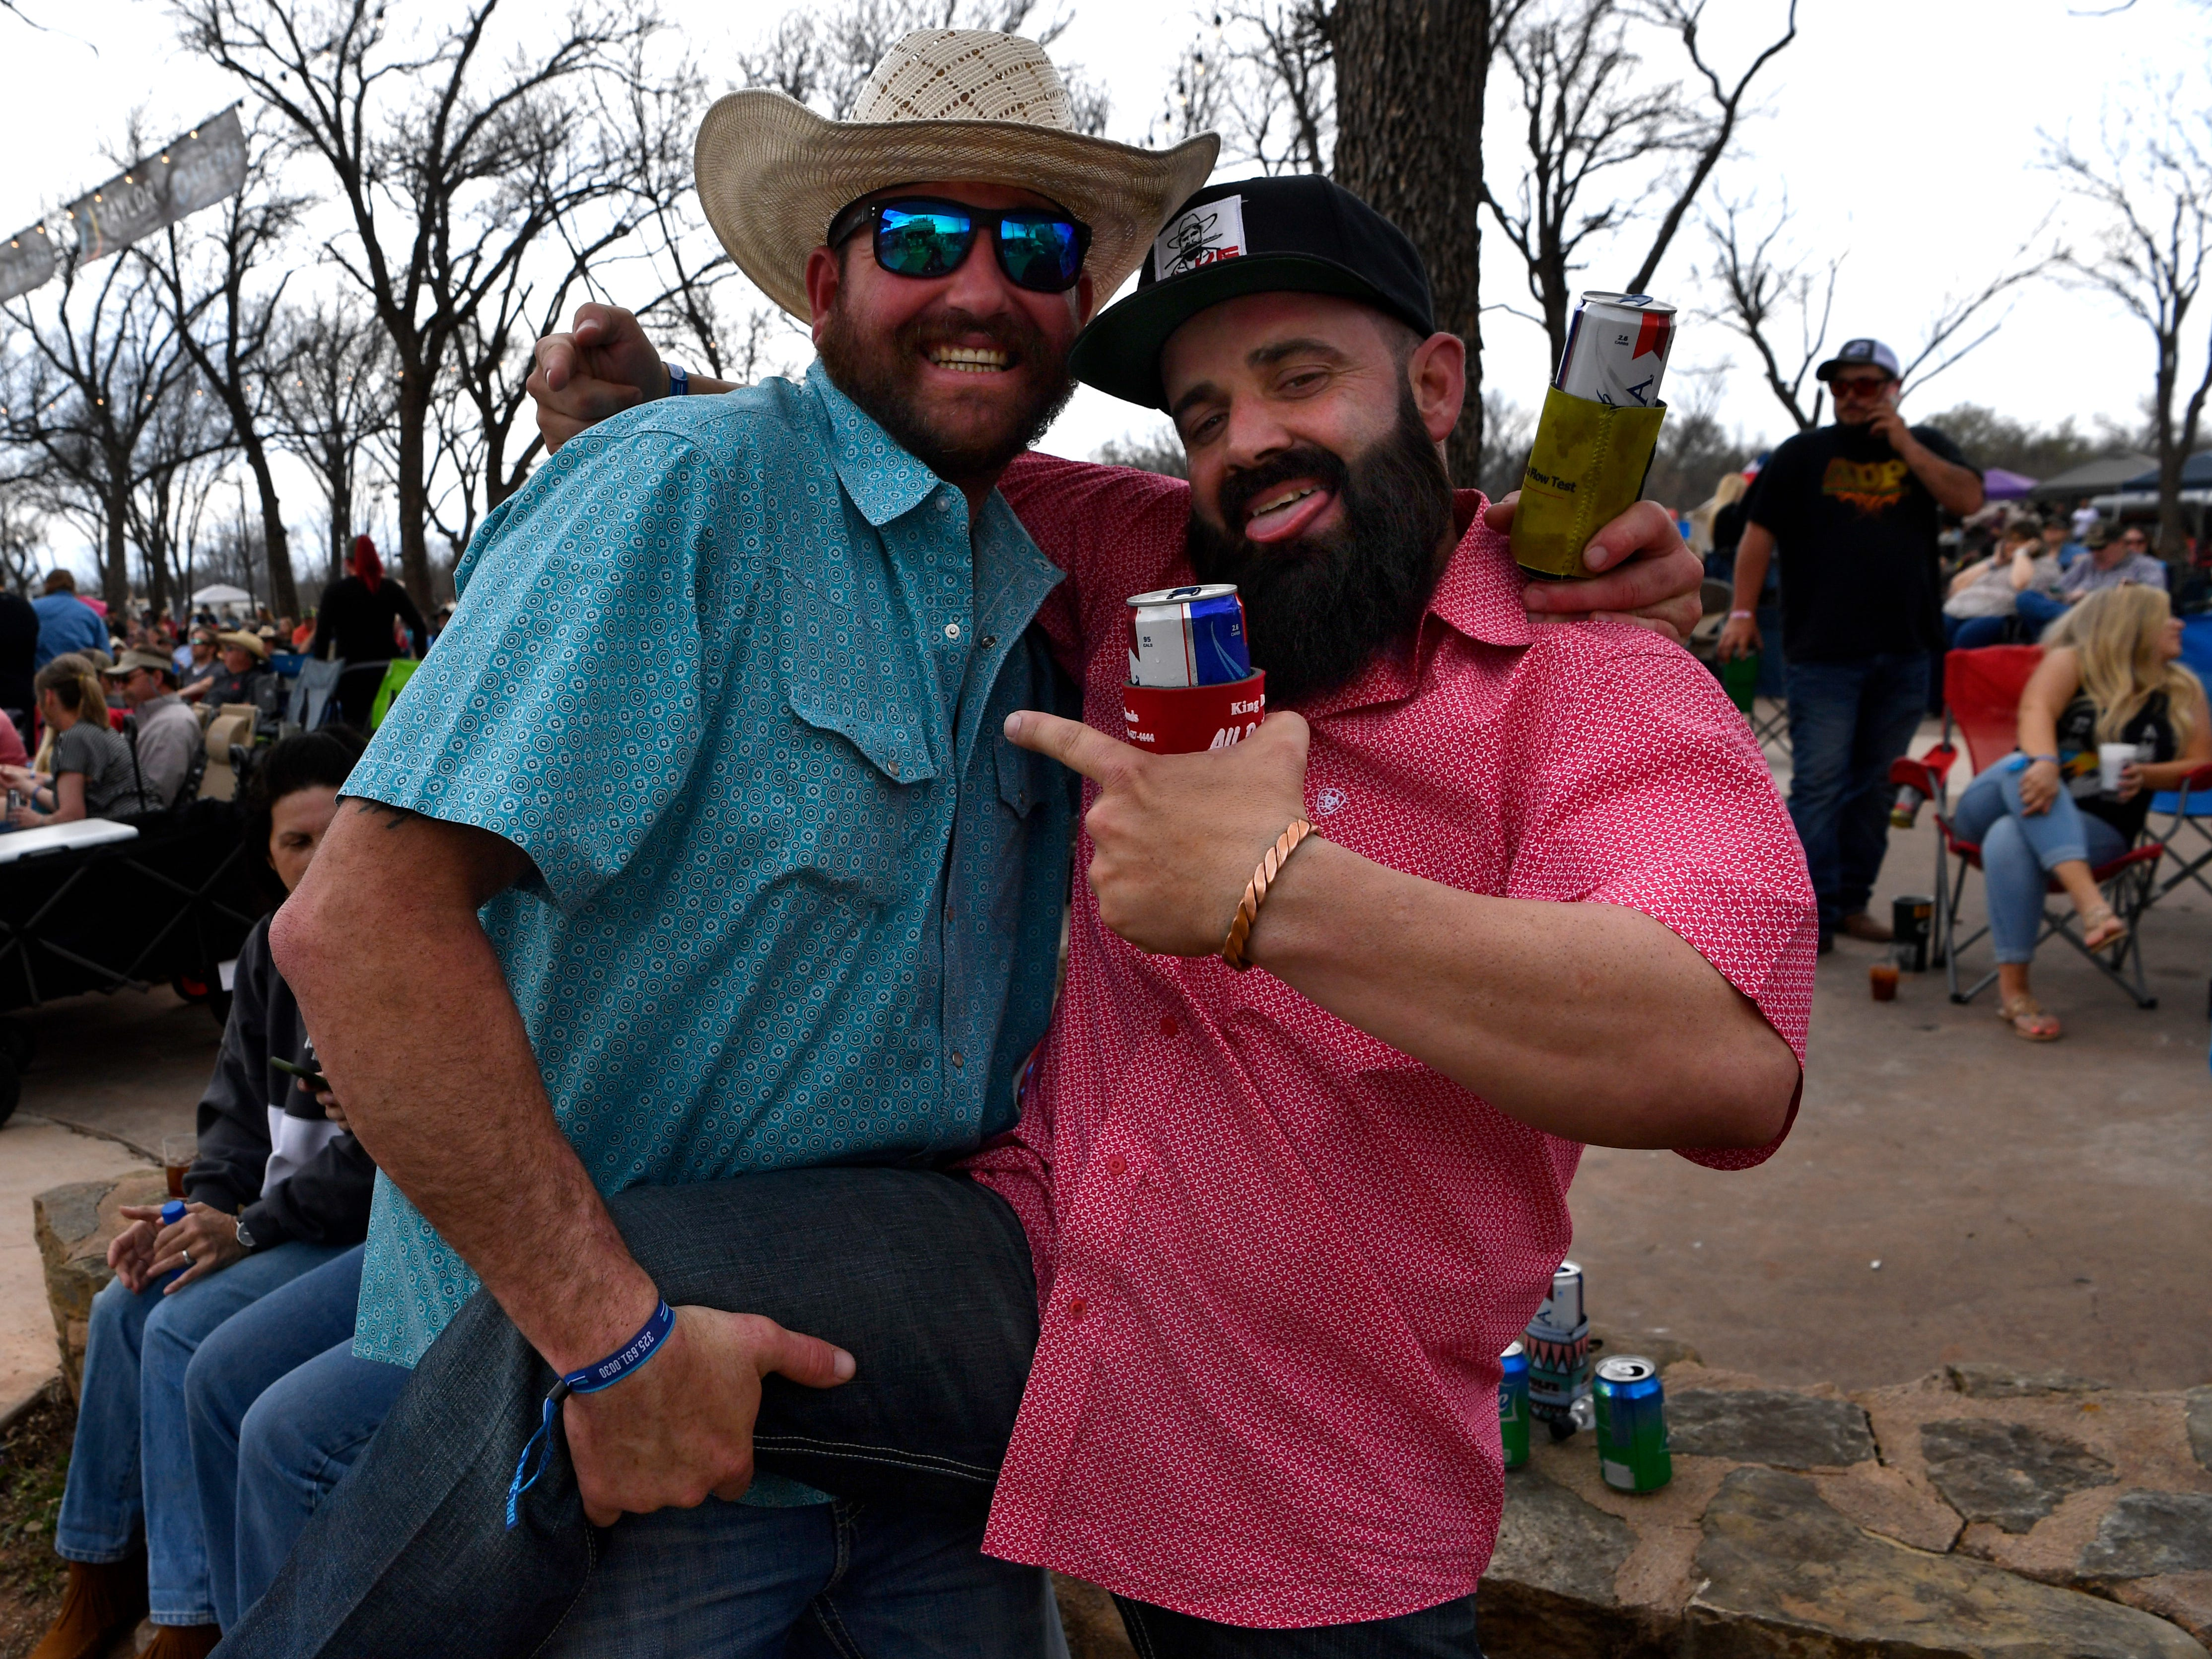 Ronnie Barnes (left) and Jimmy Isaacs both said this was their second year attending the Outlaws & Legends Music Festival Friday March 22, 2019.